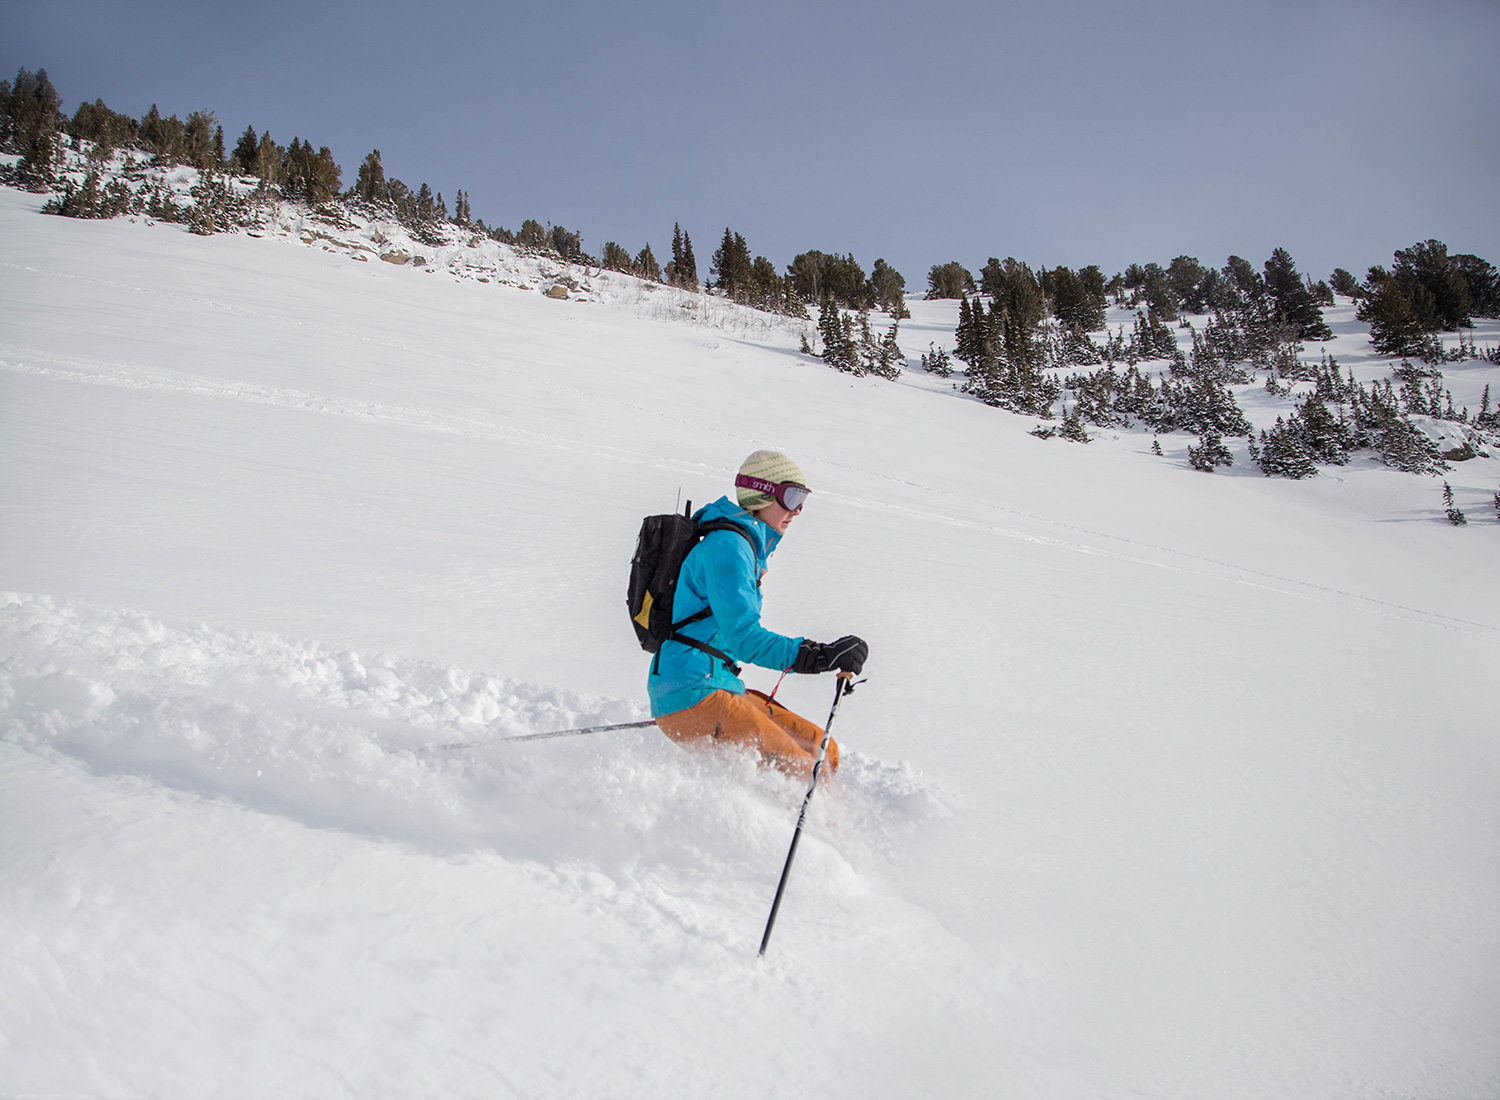 pictures-of-backcountry-skiing-run-toledo-bowl.jpg